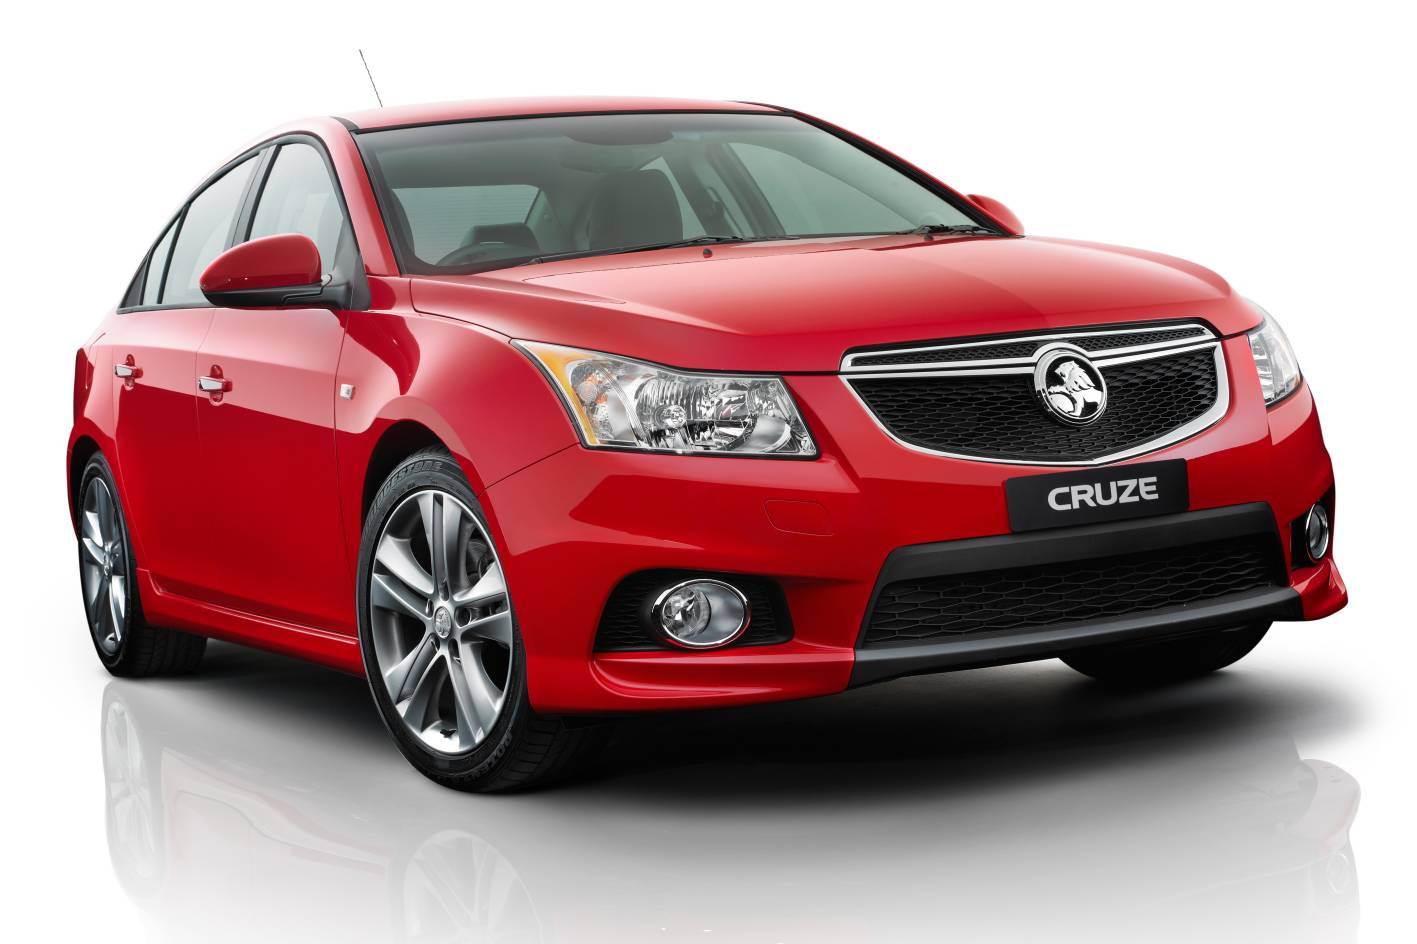 Holden Cars - News: MY14 Cruze adds 1.6L Turbo